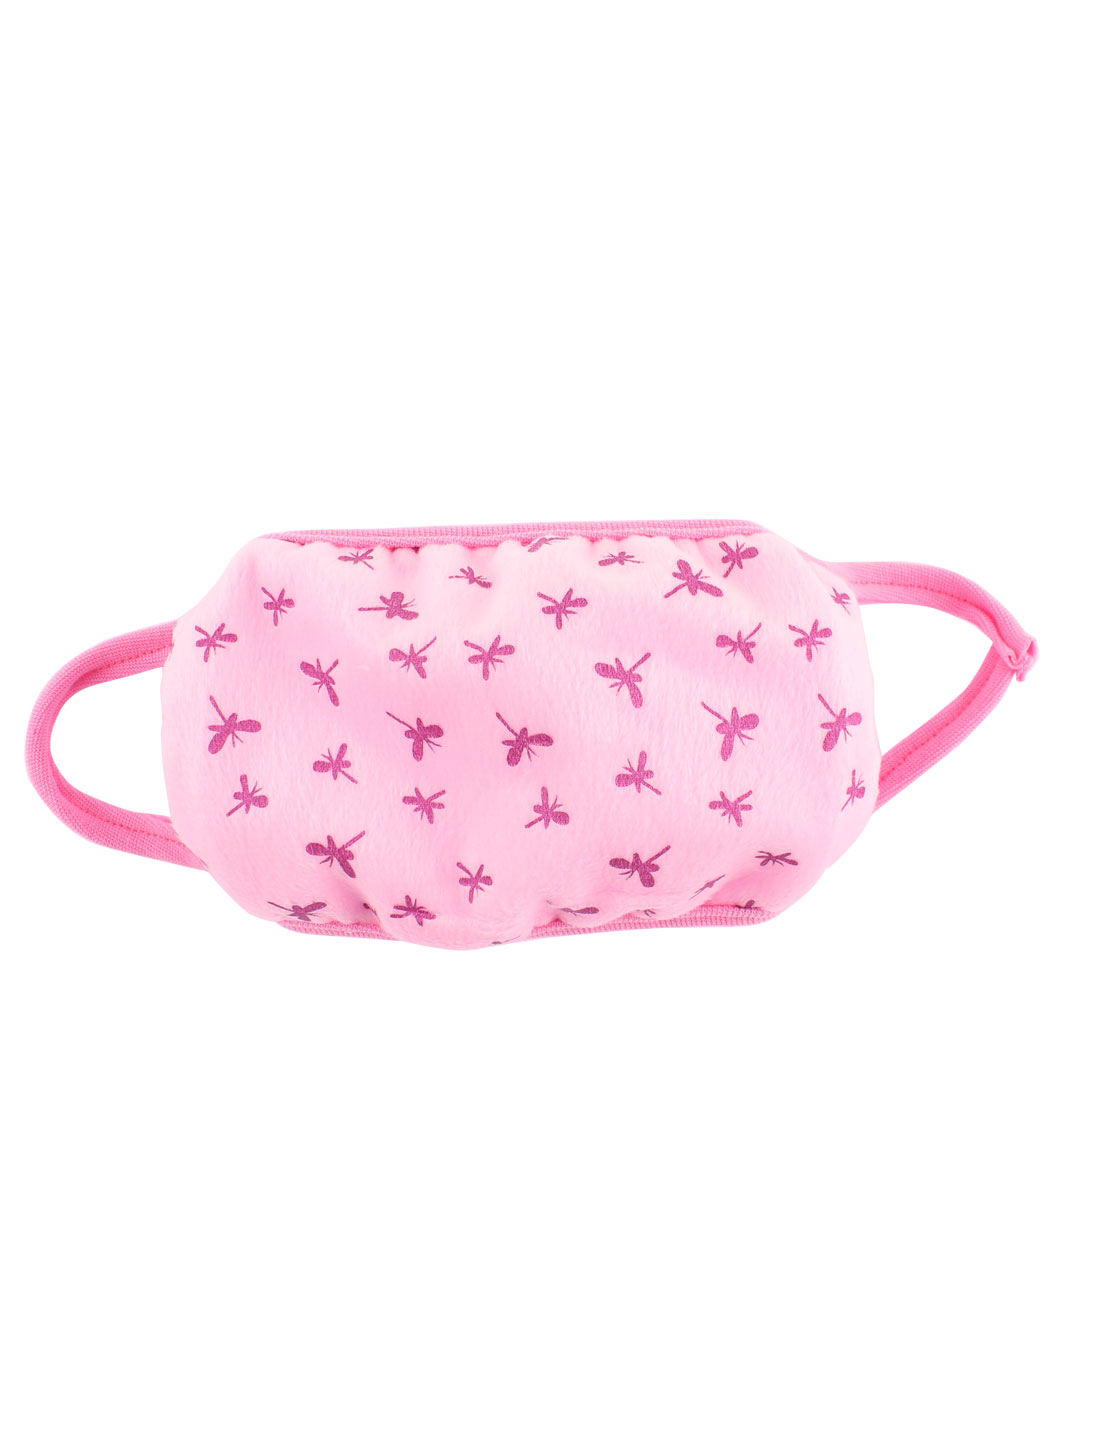 Woman Butterfly Pattern Mouth Mask Cover Respirator Protector Muffle Pink